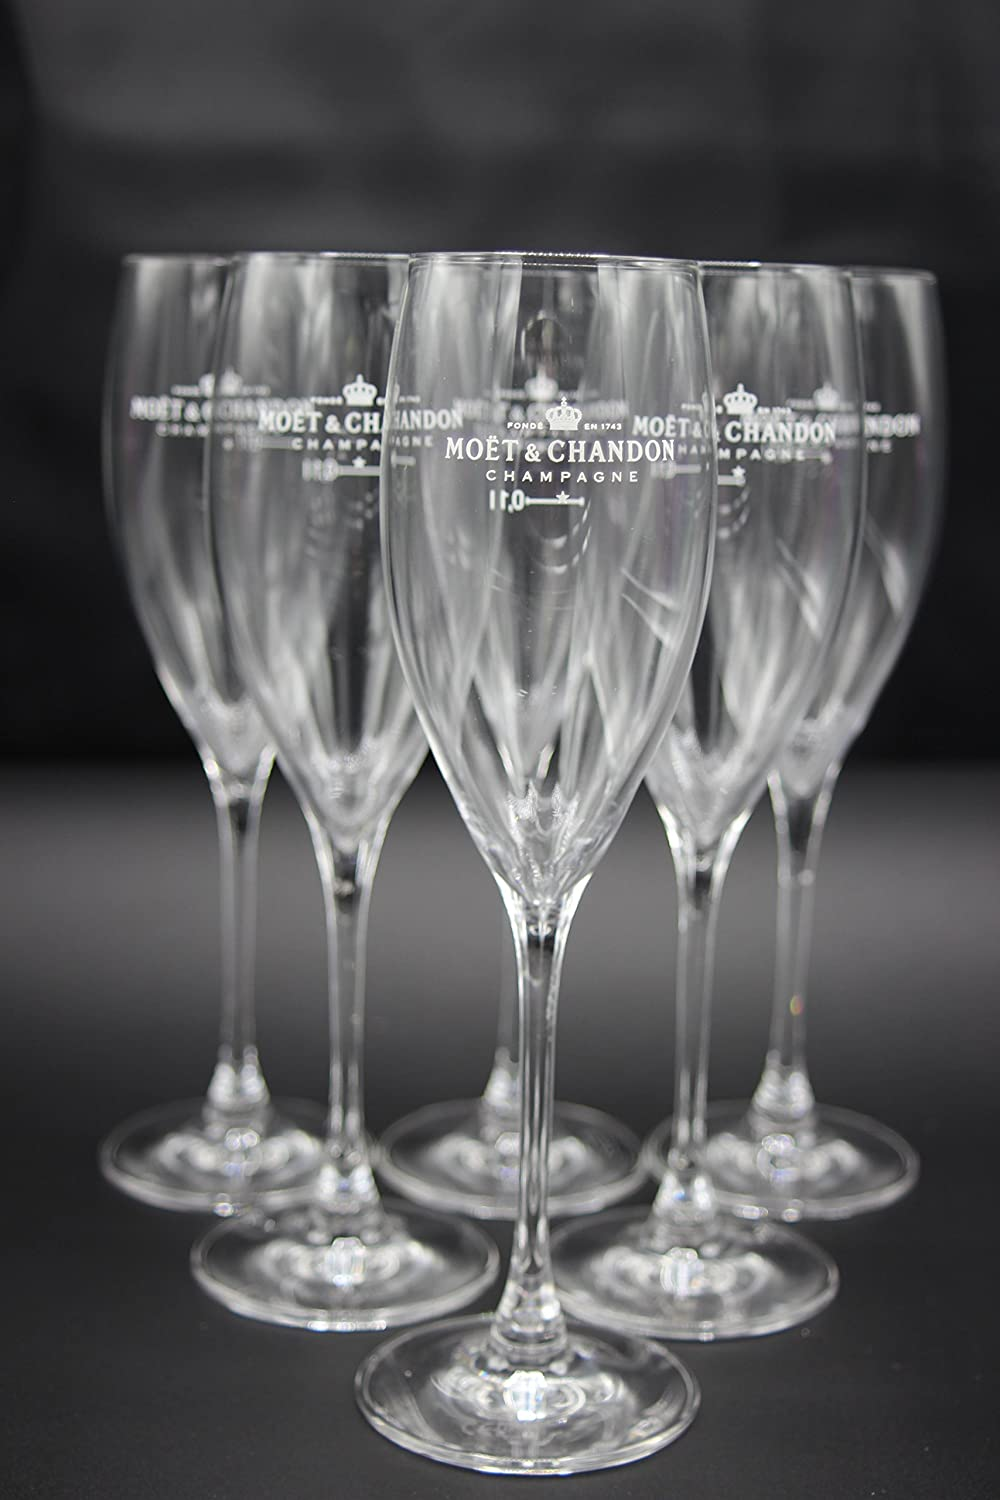 6 Moët & Chandon Champagne, Set of 6 Mohab